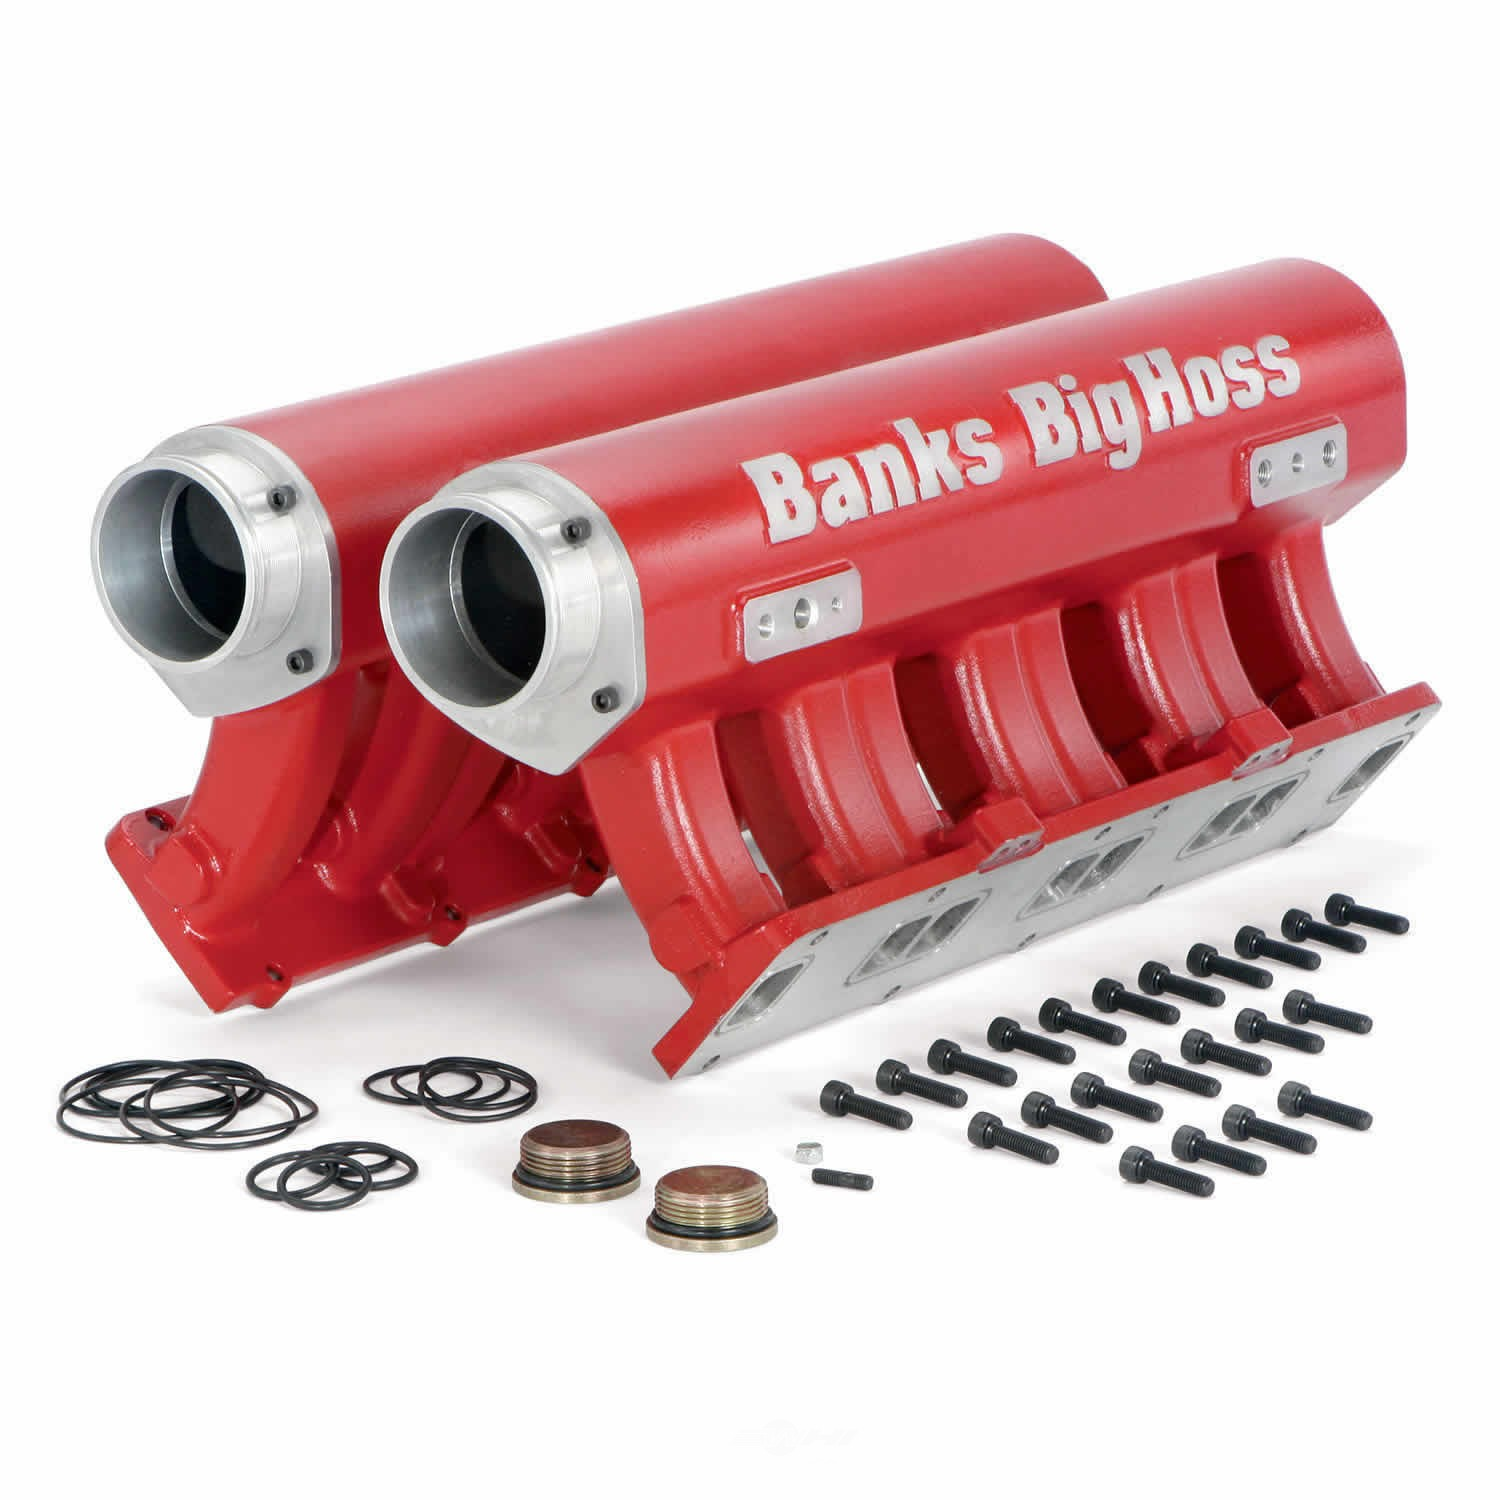 BANKS POWER - Big Hoss Racing Intake Manifold System - Red Powder Coated - B1T 42733